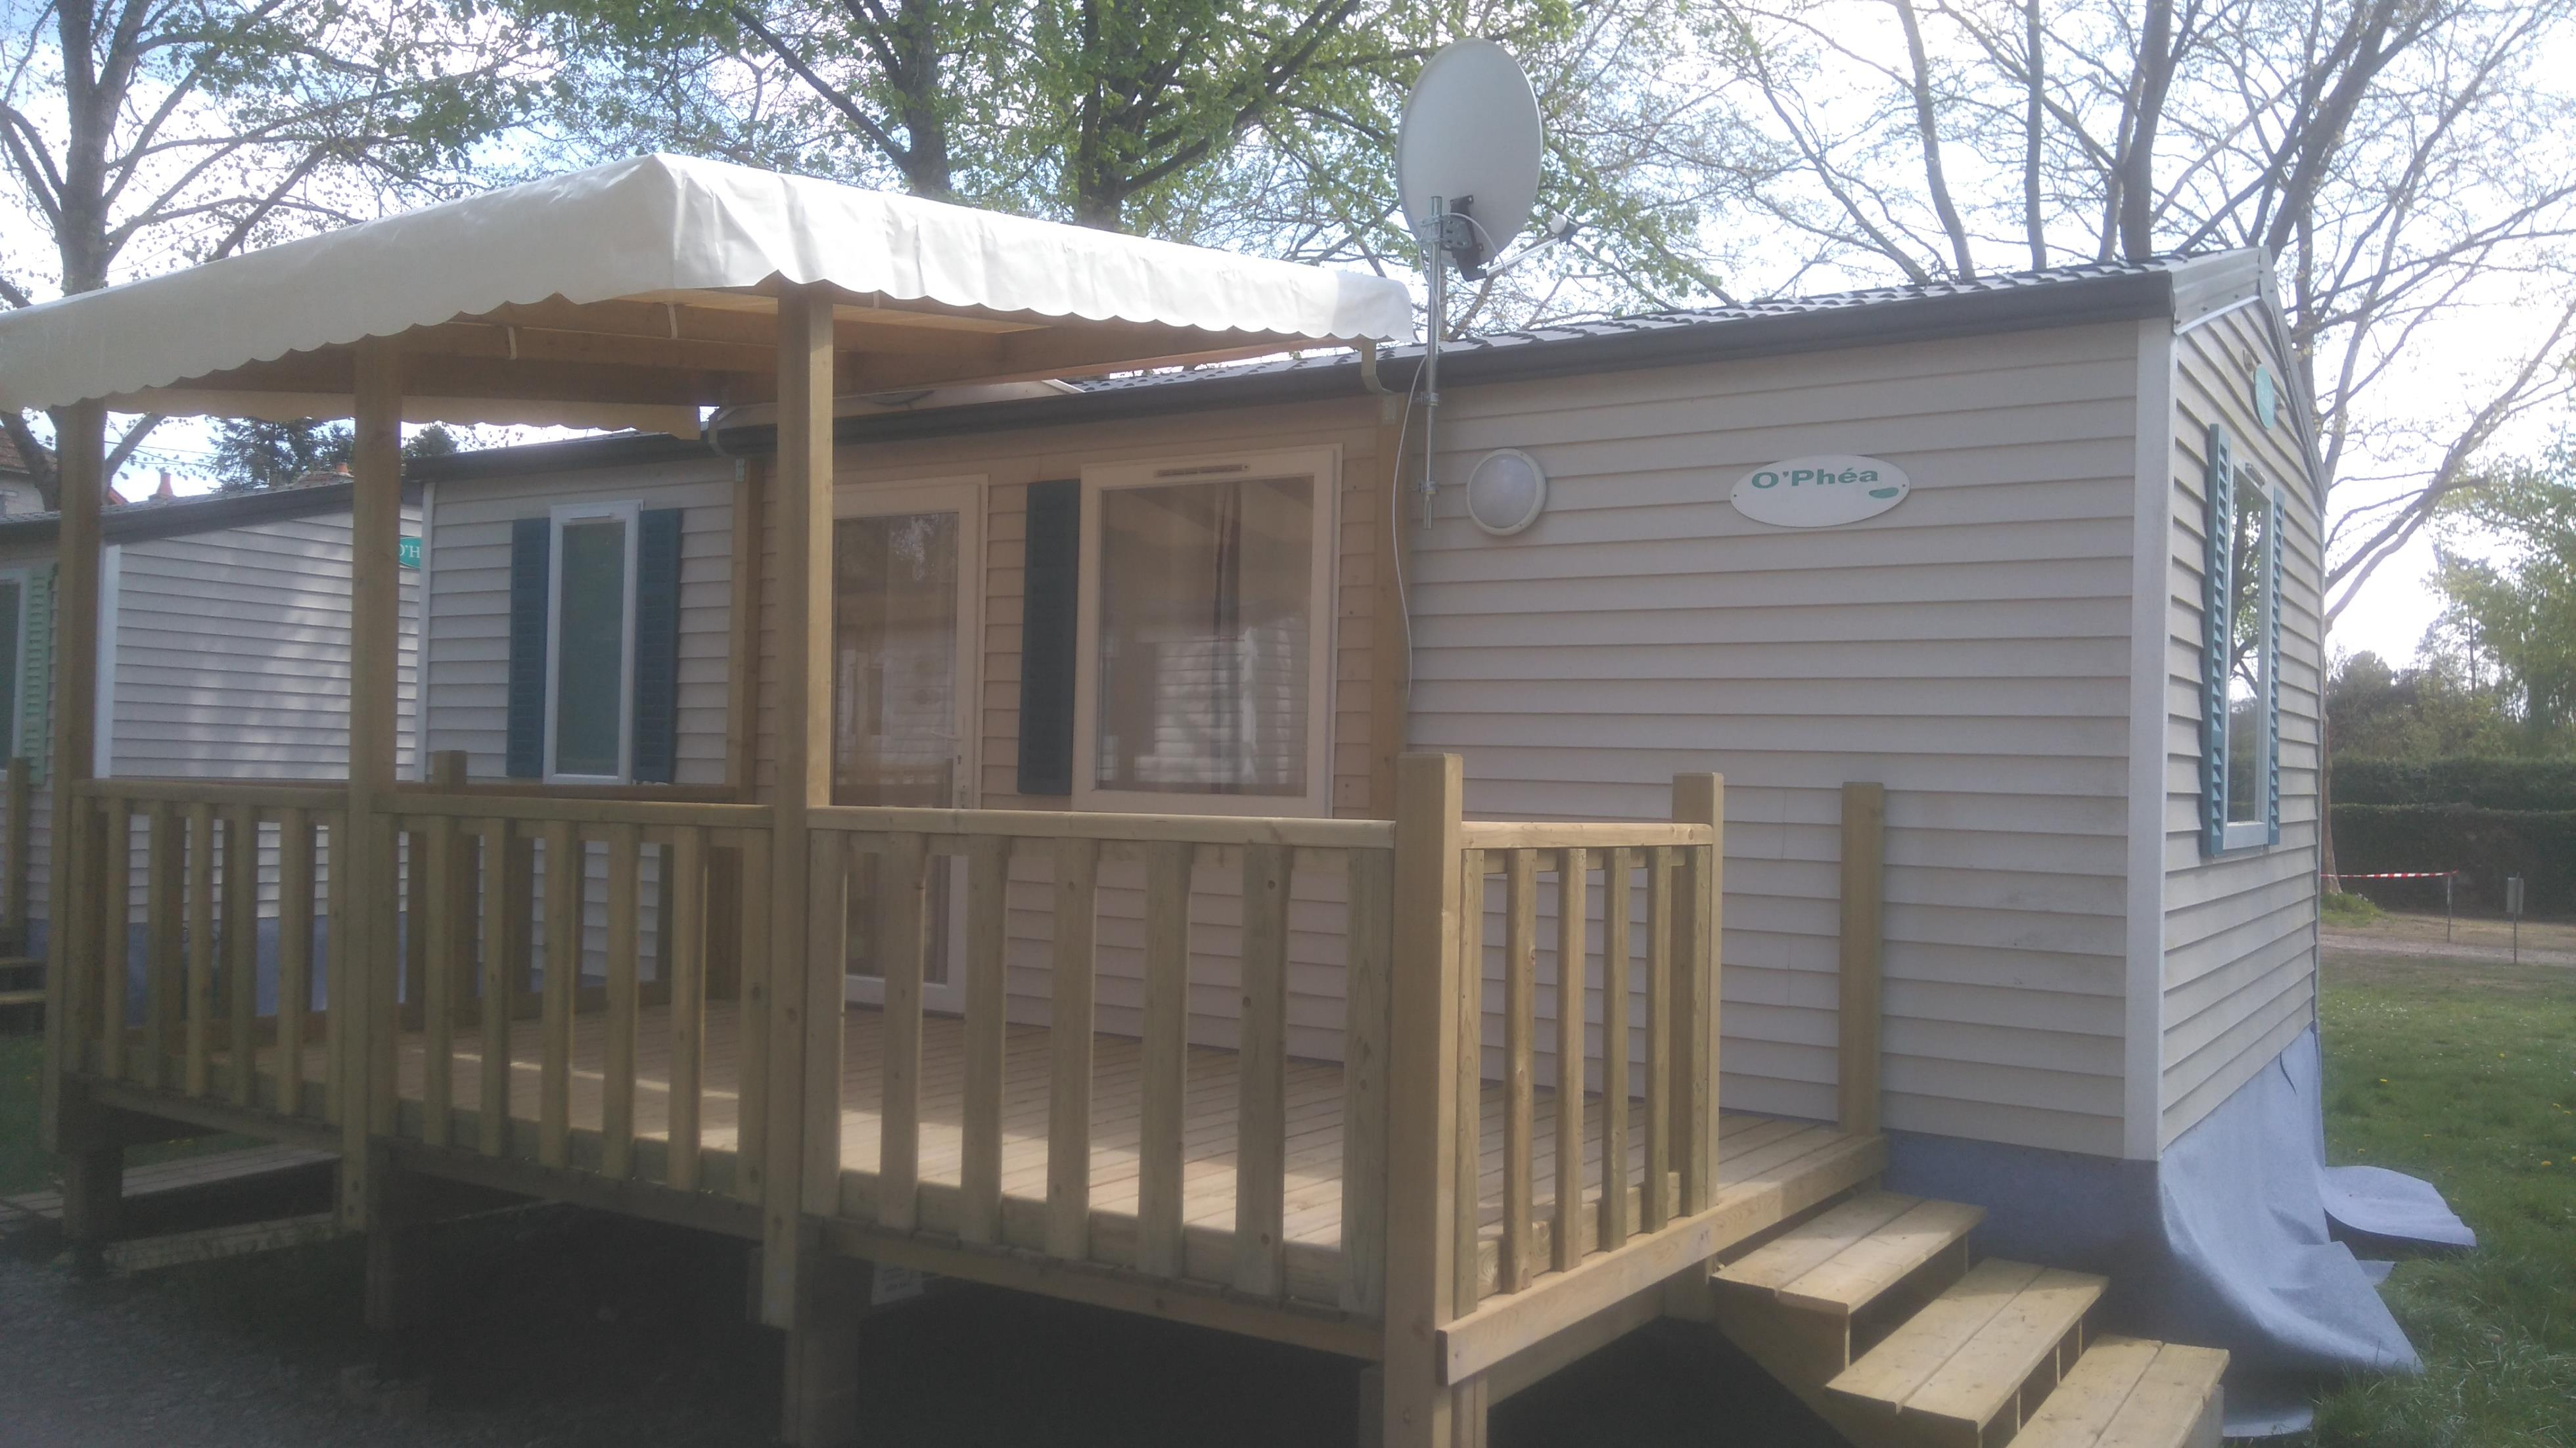 Location - Mobil-Home Privilege (2 Chambres) - Camping Les Chambons